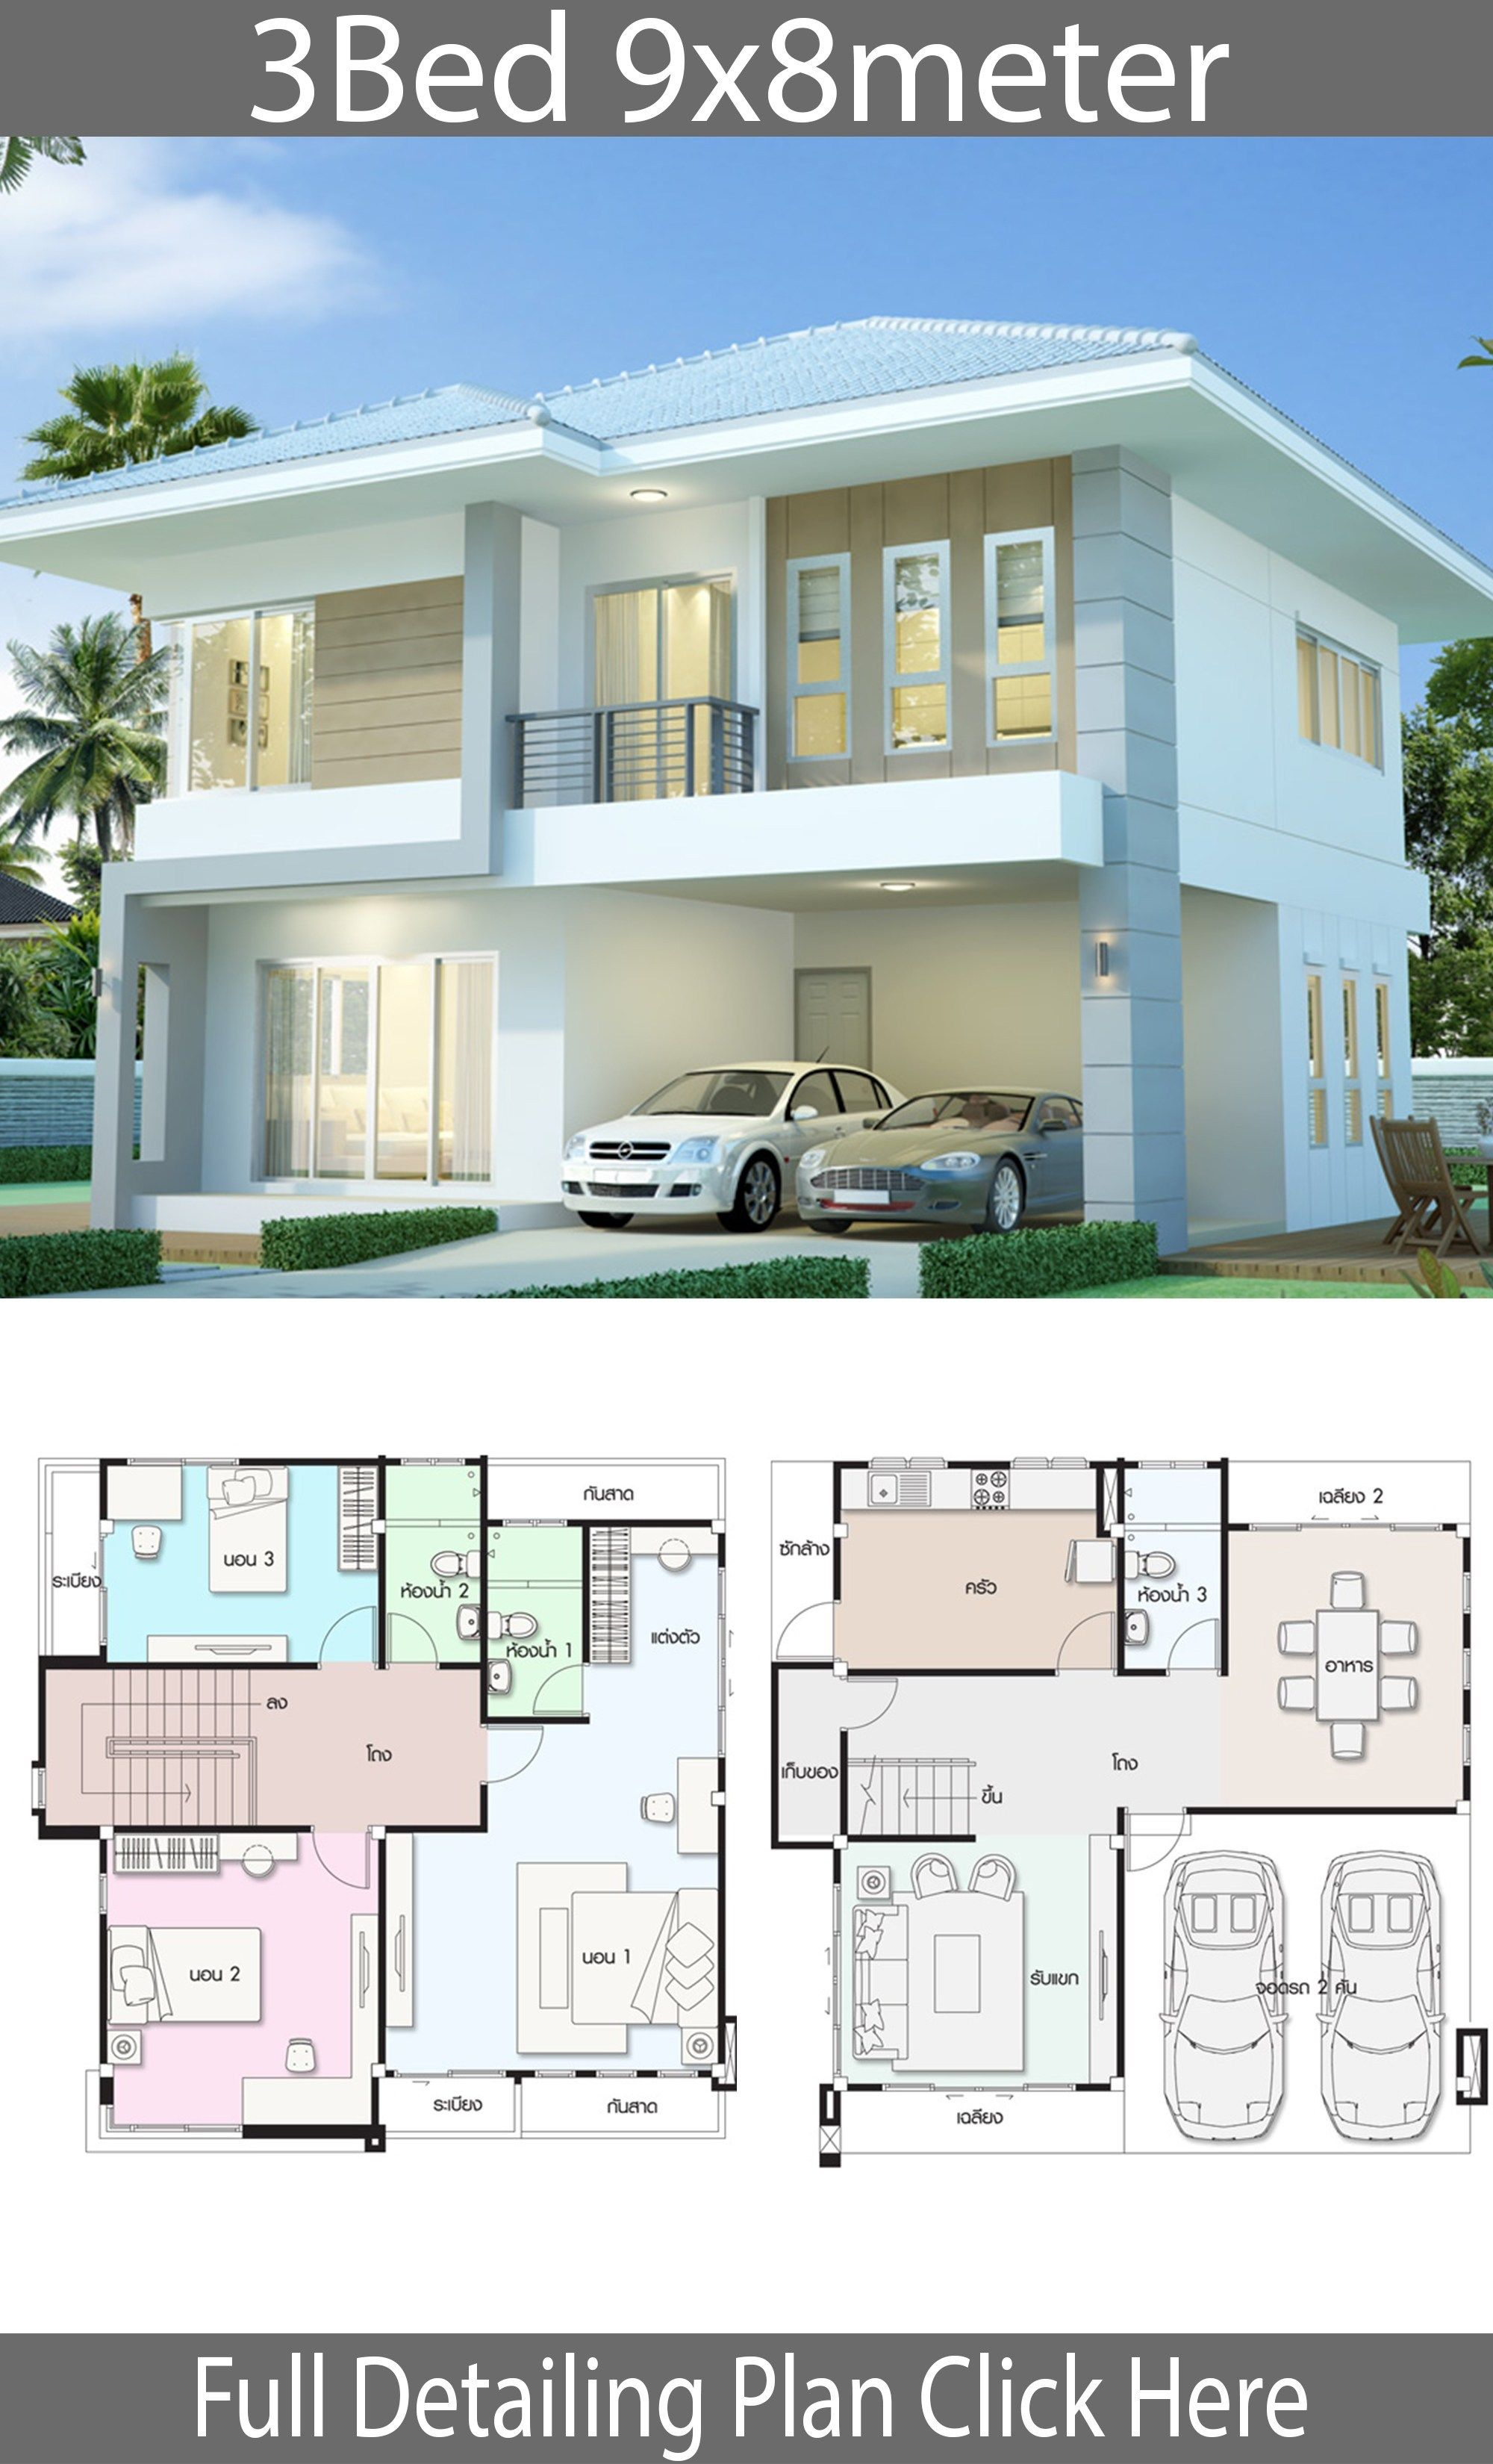 Home Design Plan 9x8m With 3 Bedrooms Style Modernhouse Description Number Of Floors 2 Stor Family House Plans 2 Storey House Design Architectural House Plans